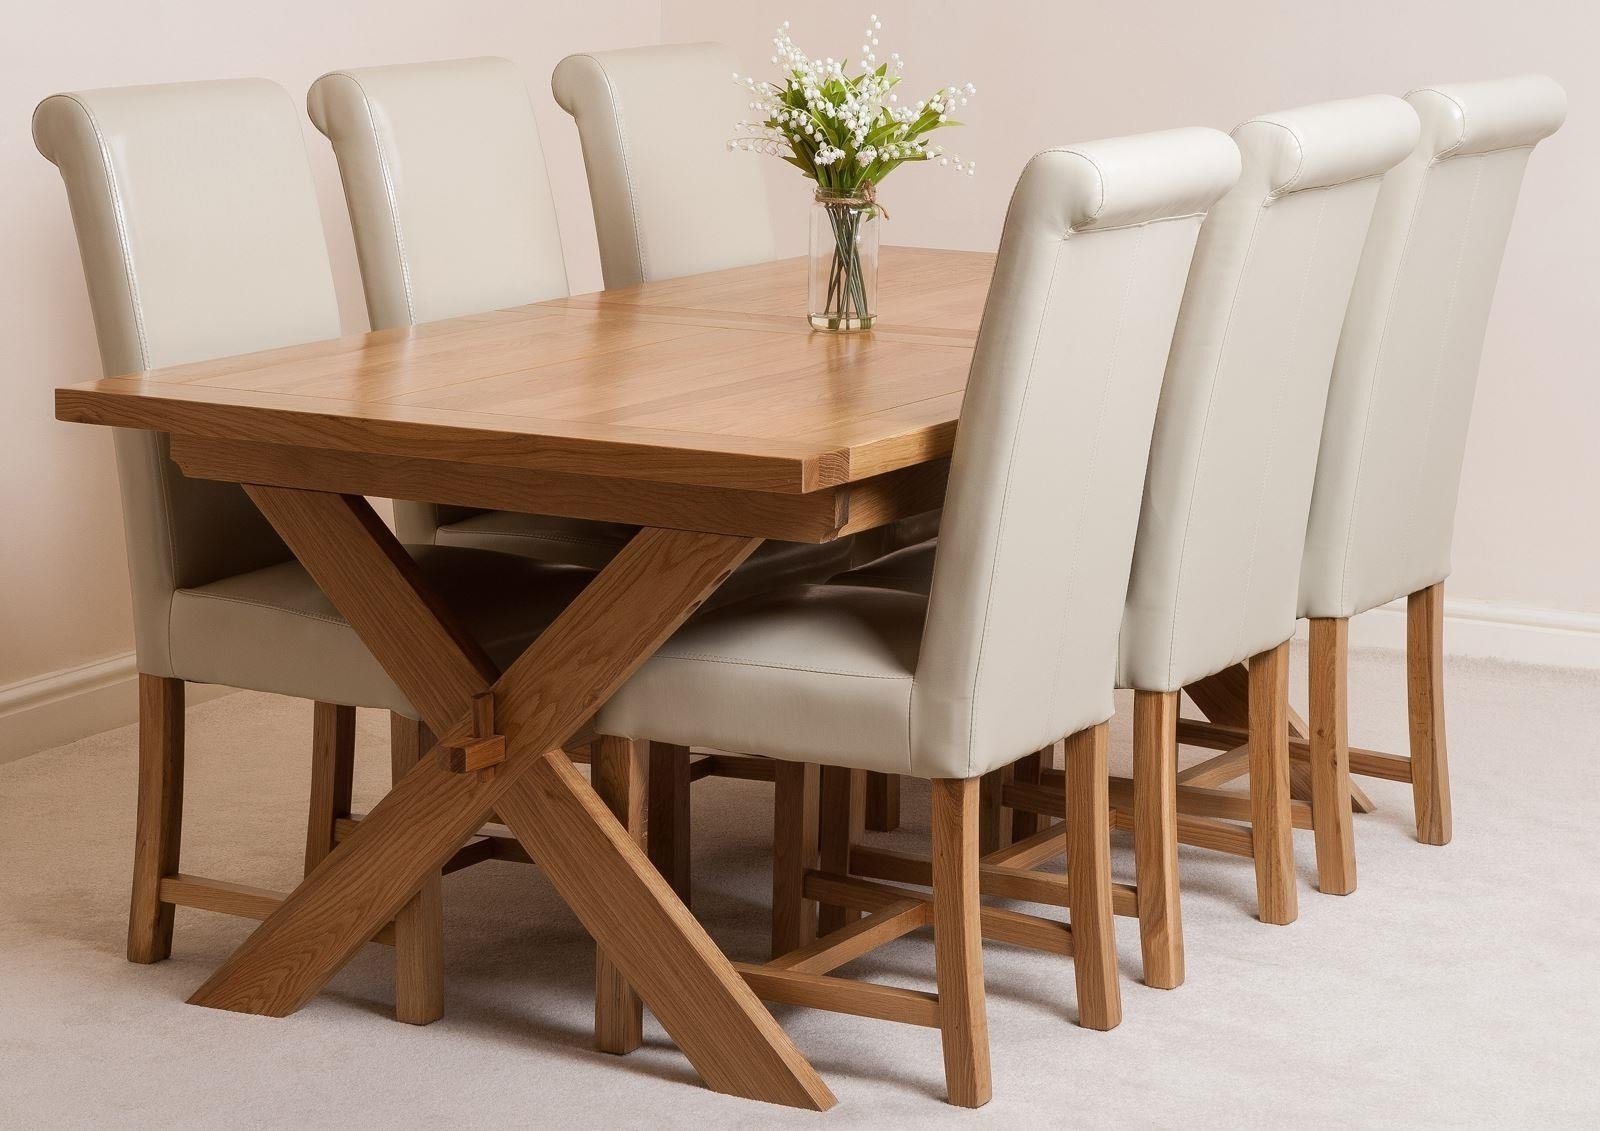 Oak Furniture King Within 2018 Extending Dining Table Sets (View 19 of 25)